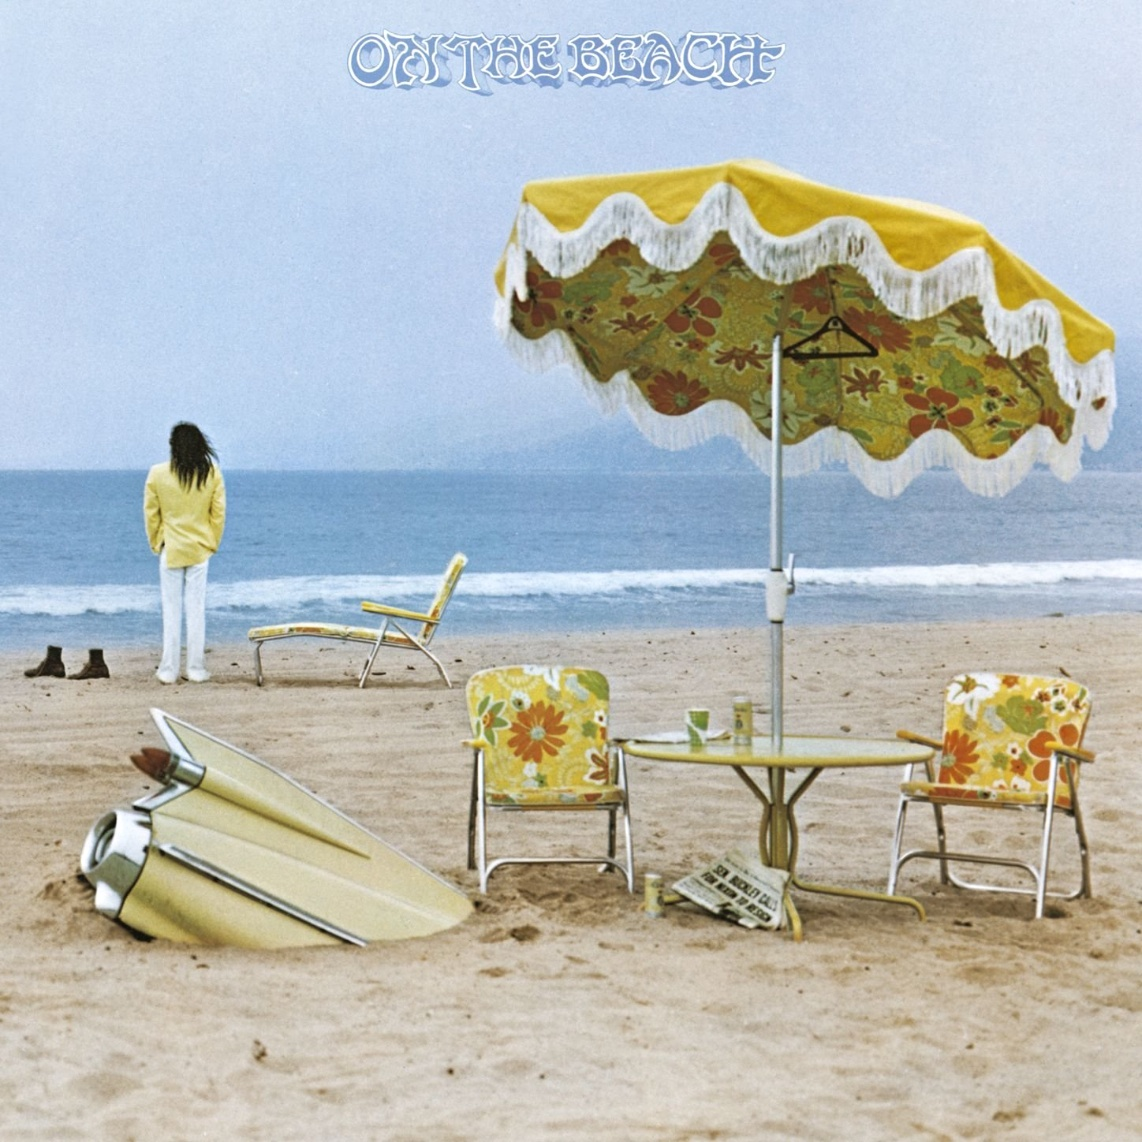 Neil Young, On the beach, cover, 1974